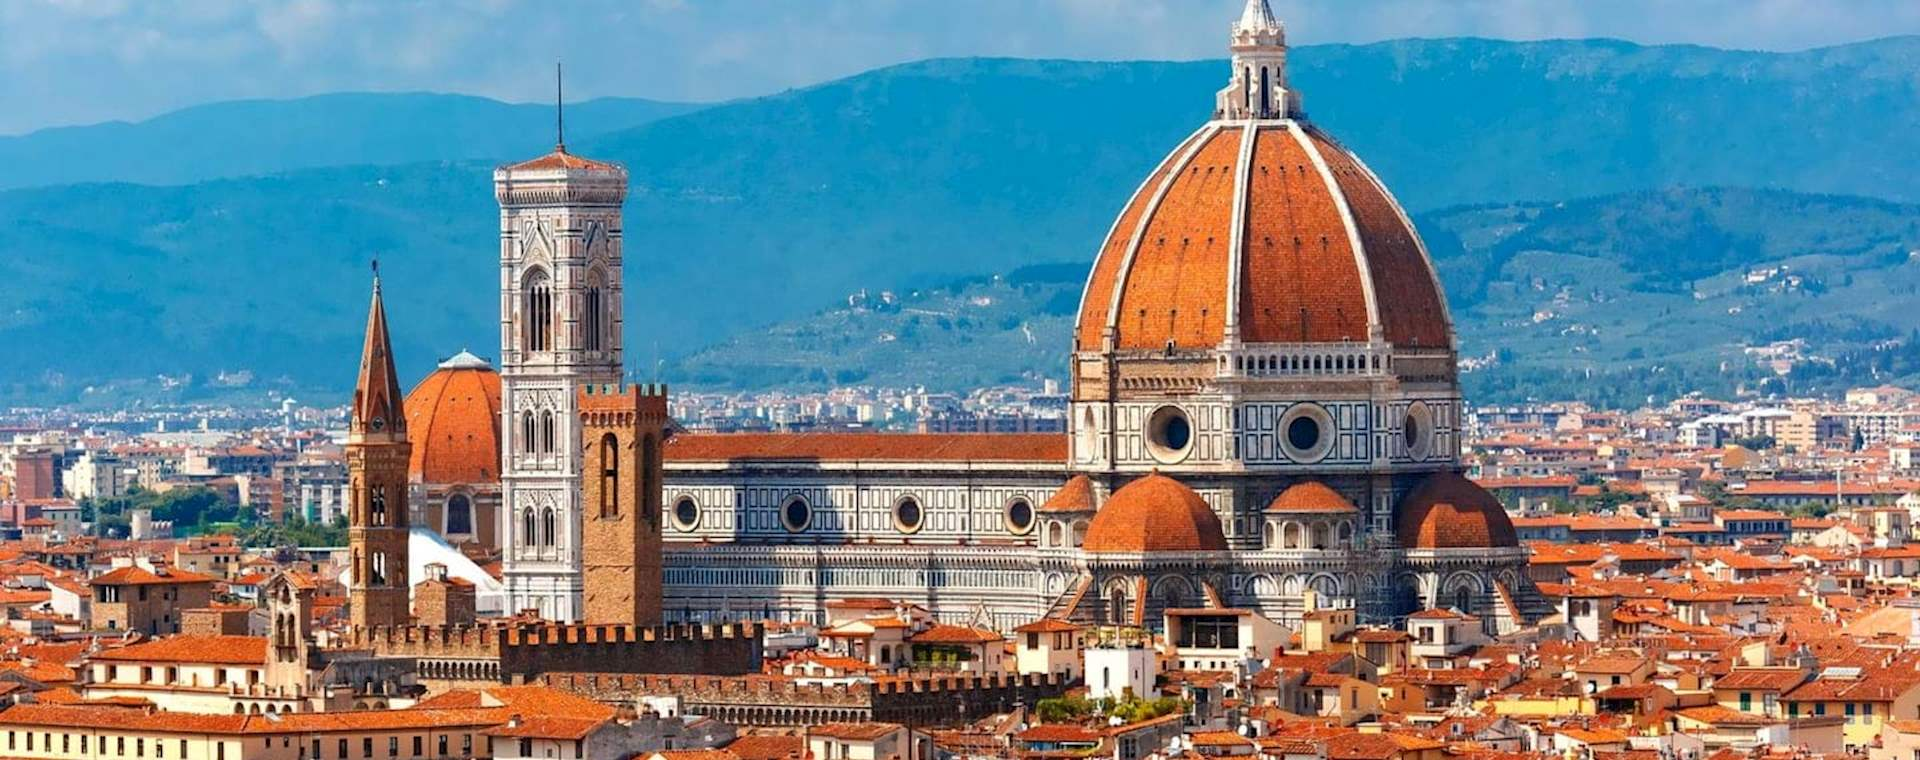 Florence Duomo Express Guided Tour